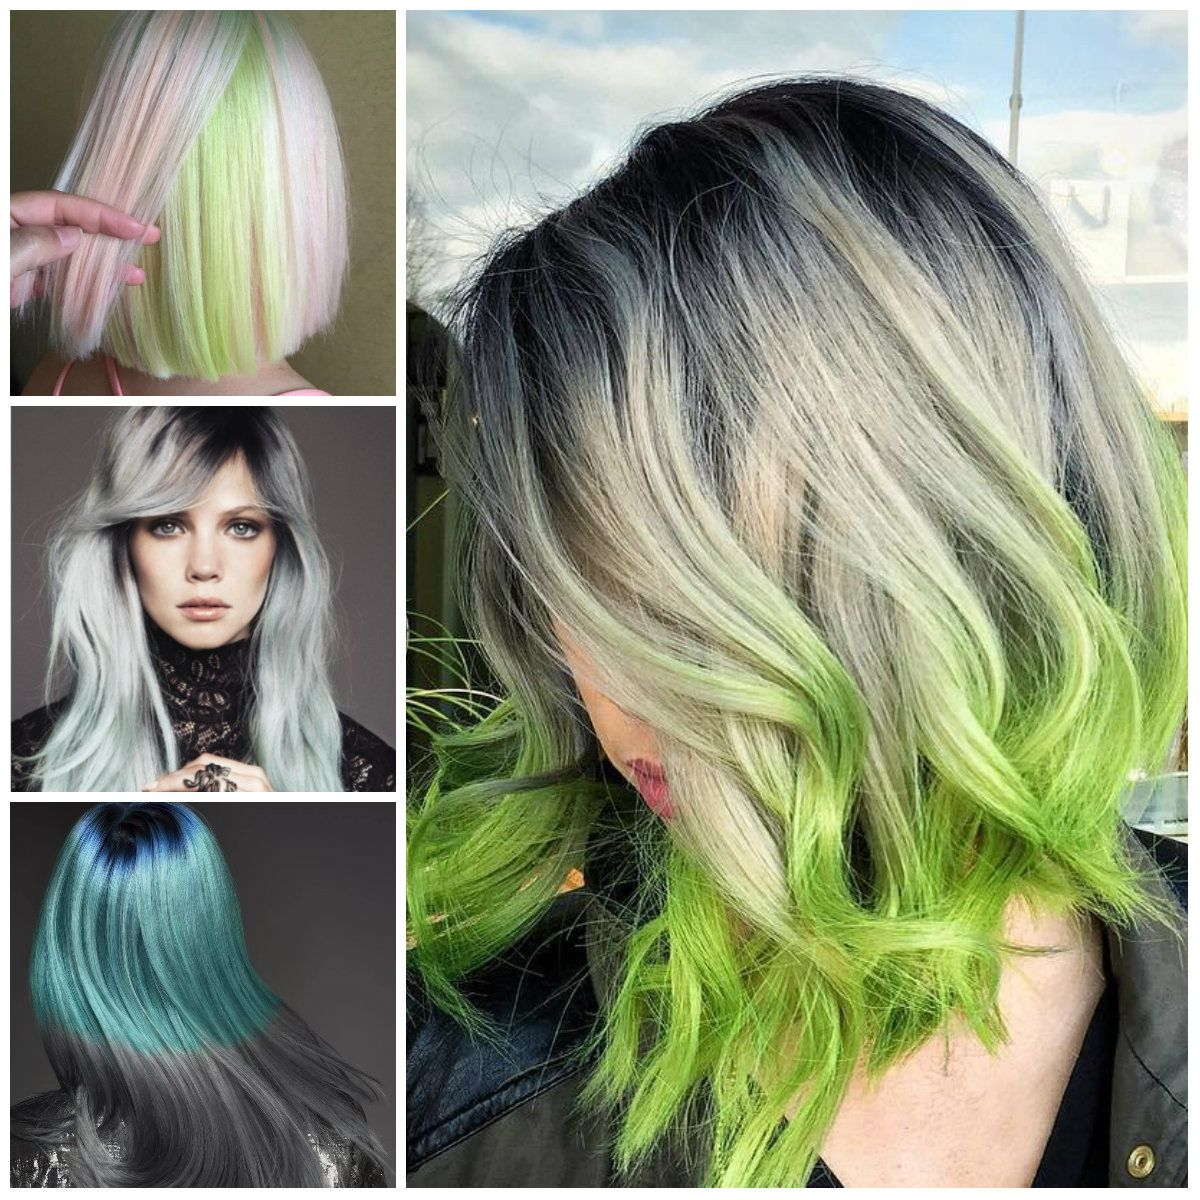 The best ways to rock green hair in 2017 haircuts hairstyles the best ways to rock green hair in 2017 haircuts hairstyles 2016 2017 pmusecretfo Image collections